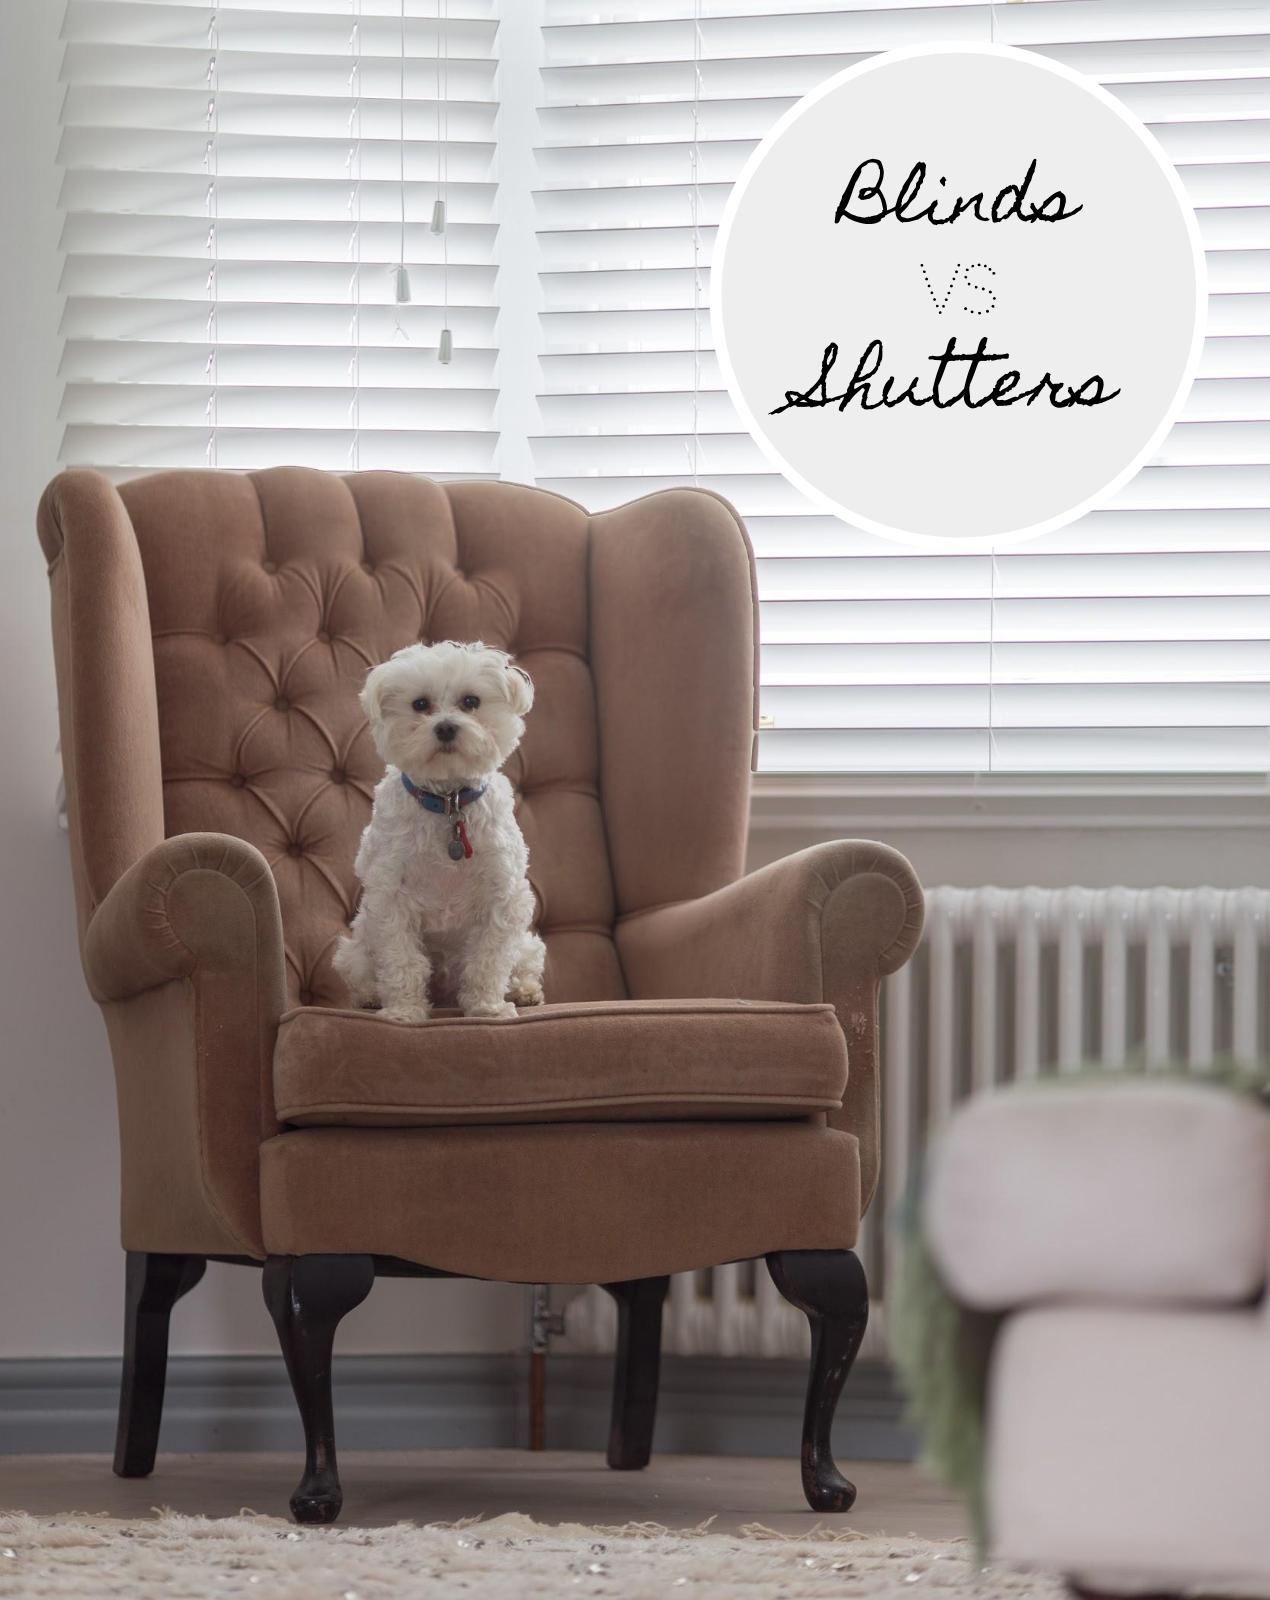 Blinds Vs Shutters. Why Blinds Are The New Shutters by WeLoveHomeBlog.